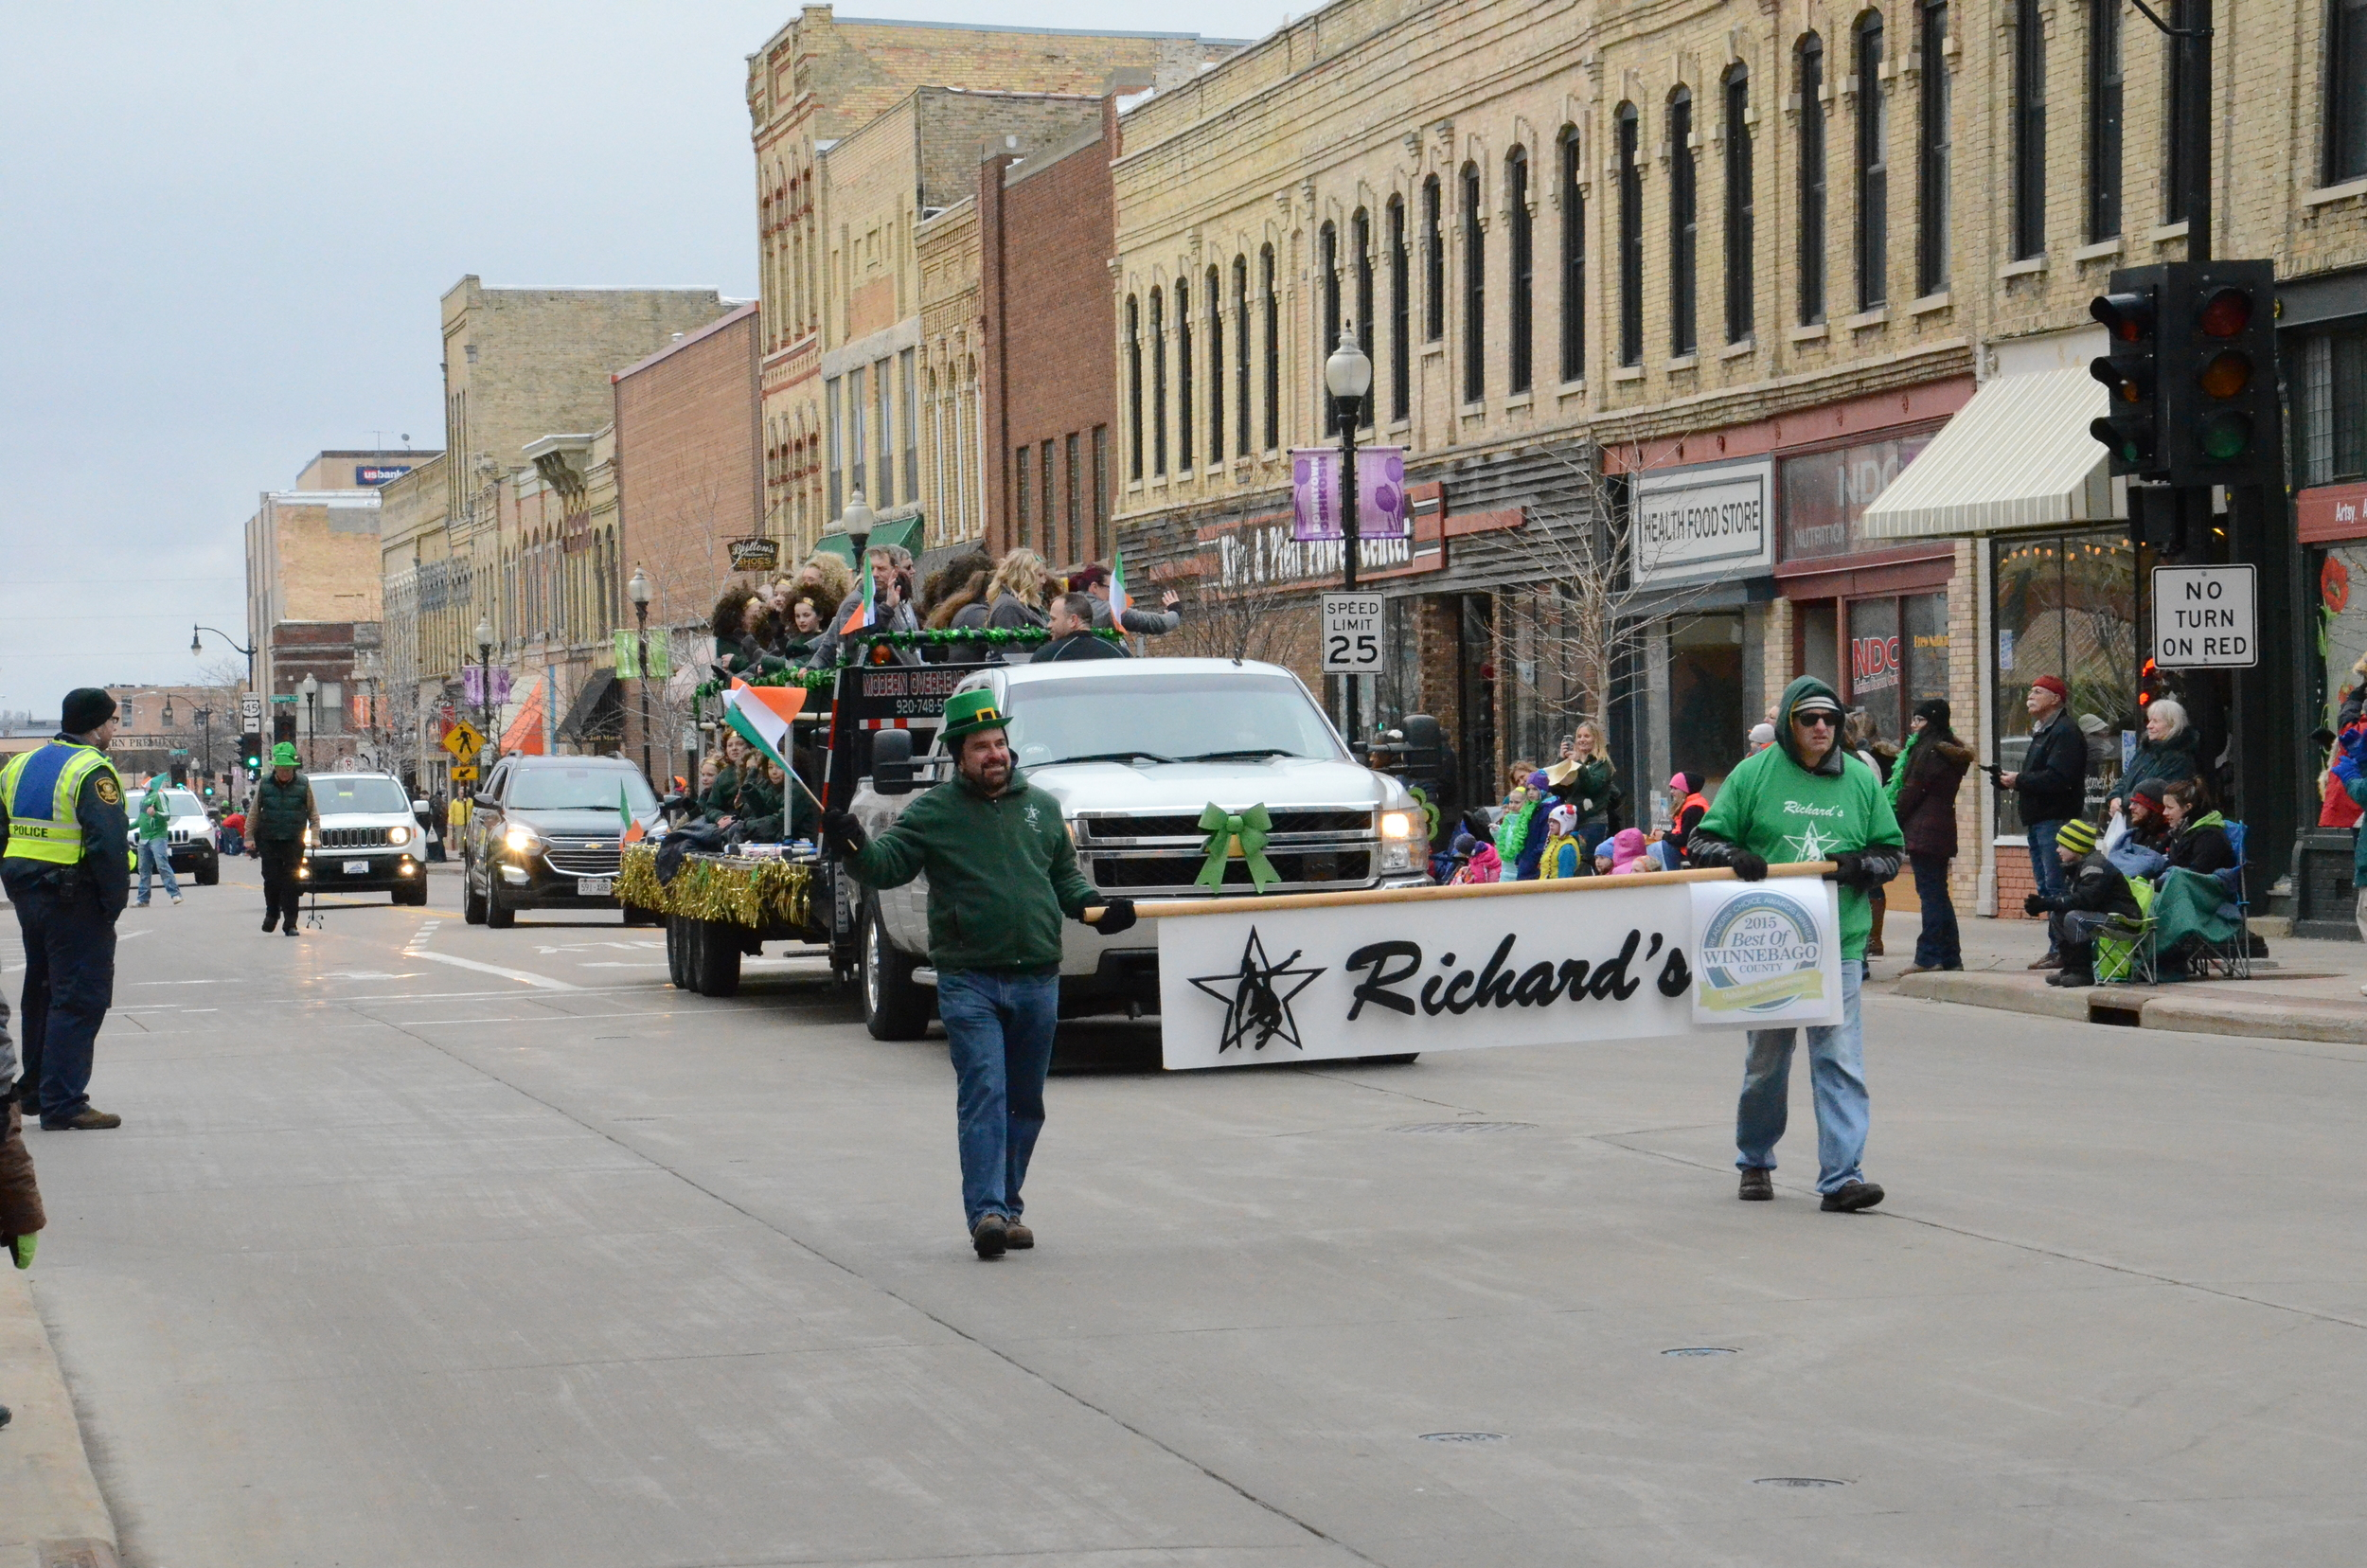 shkosh's very own Richard's School of Dance makes their way down Main Street and are introduced by their Richard's sign.